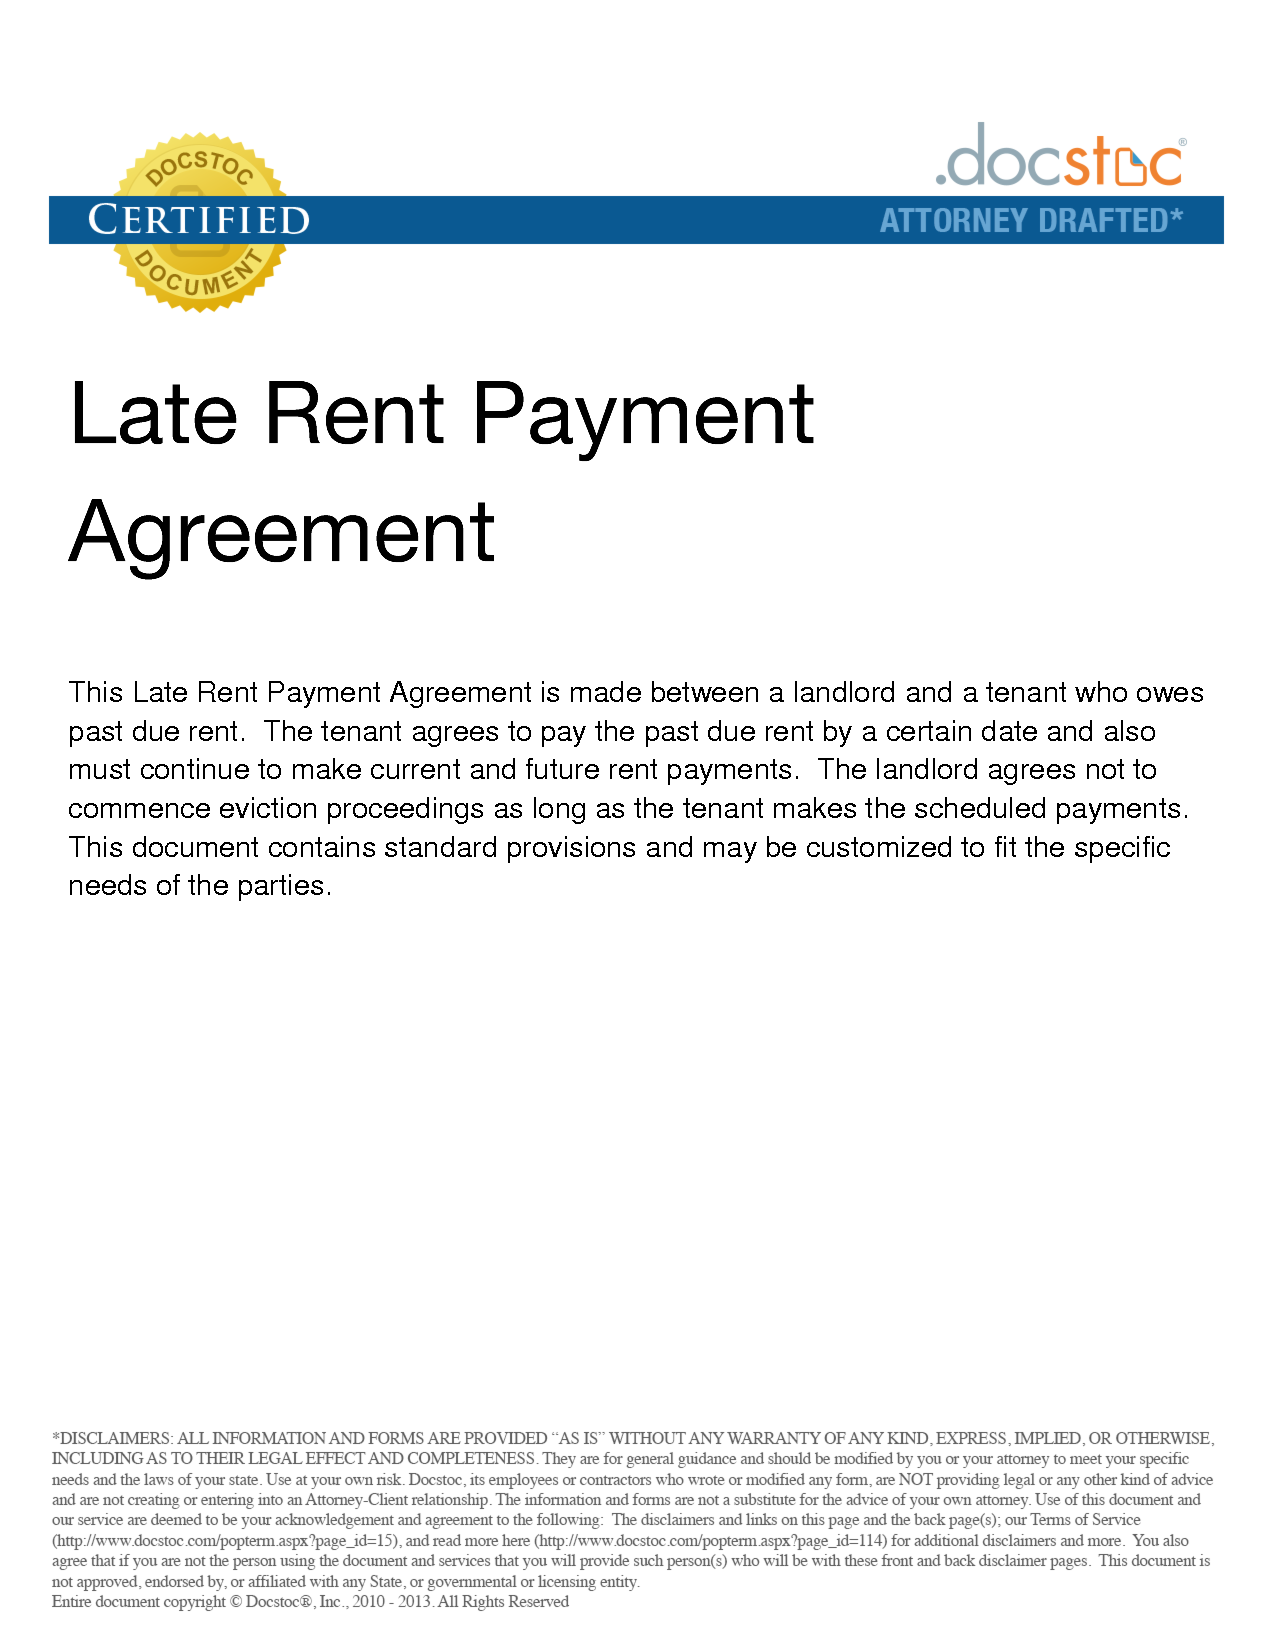 159307296.png - late rent payment agreement